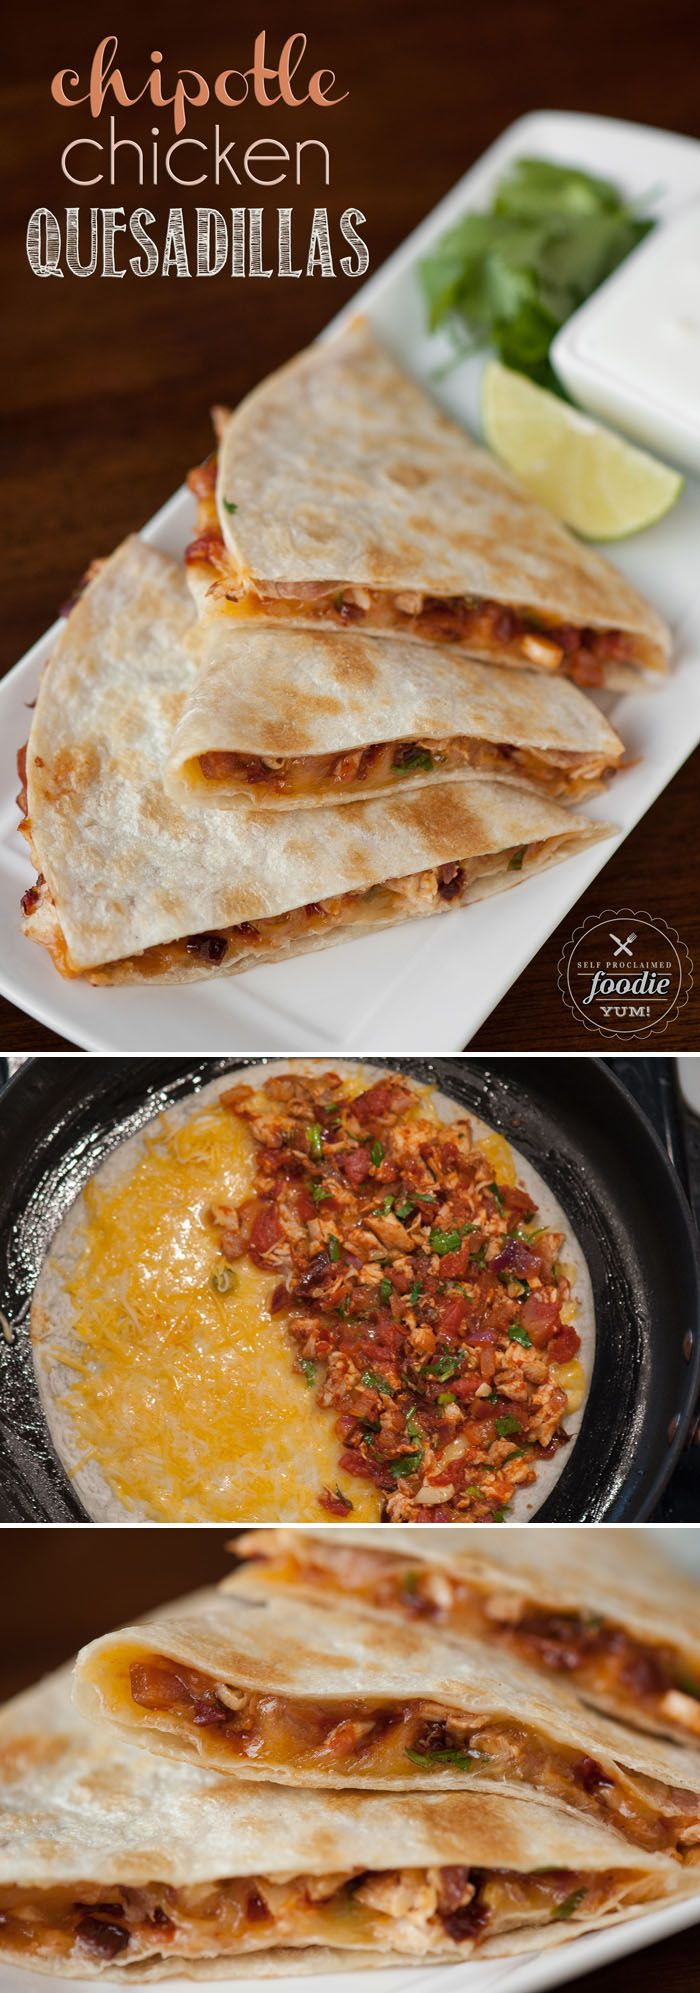 These Chipotle Chicken Quesadillas make great use of leftover shredded chicken for an incredibly delicious appetizer or tasty meal.